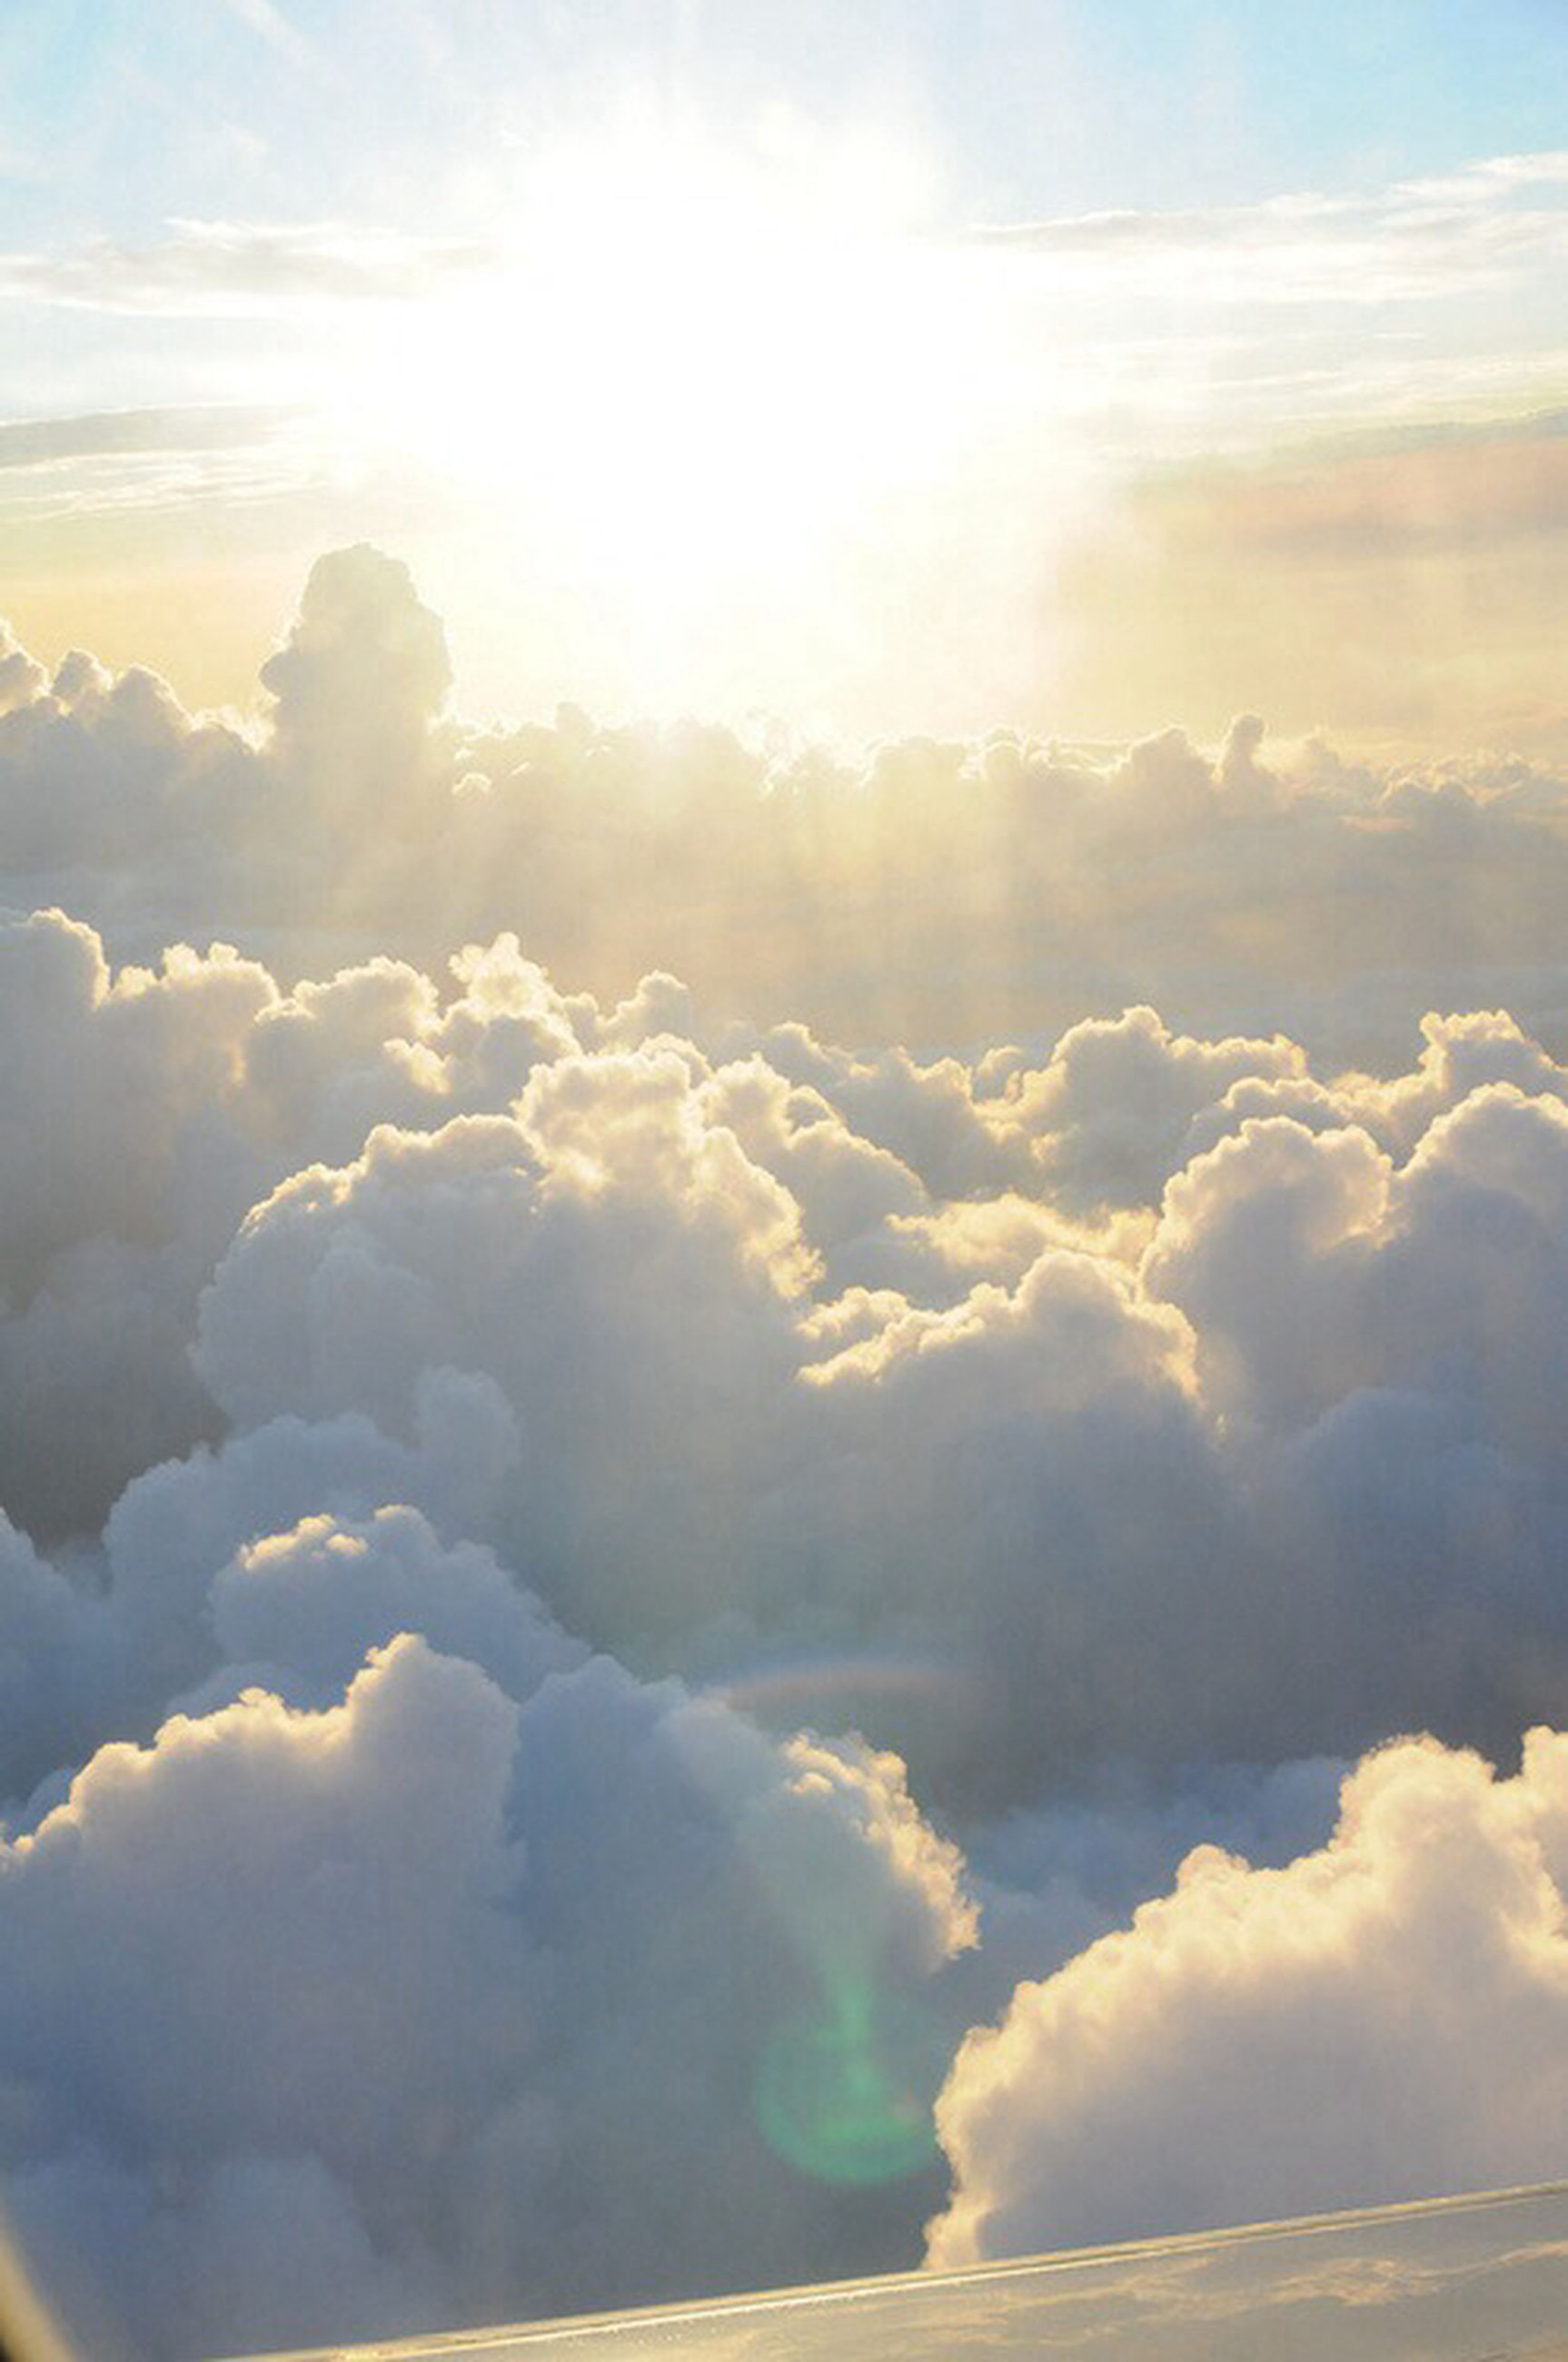 scenics, beauty in nature, tranquil scene, sky, tranquility, cloud - sky, sun, nature, cloudscape, sunbeam, sunlight, idyllic, cloudy, cloud, sky only, weather, majestic, outdoors, white color, no people